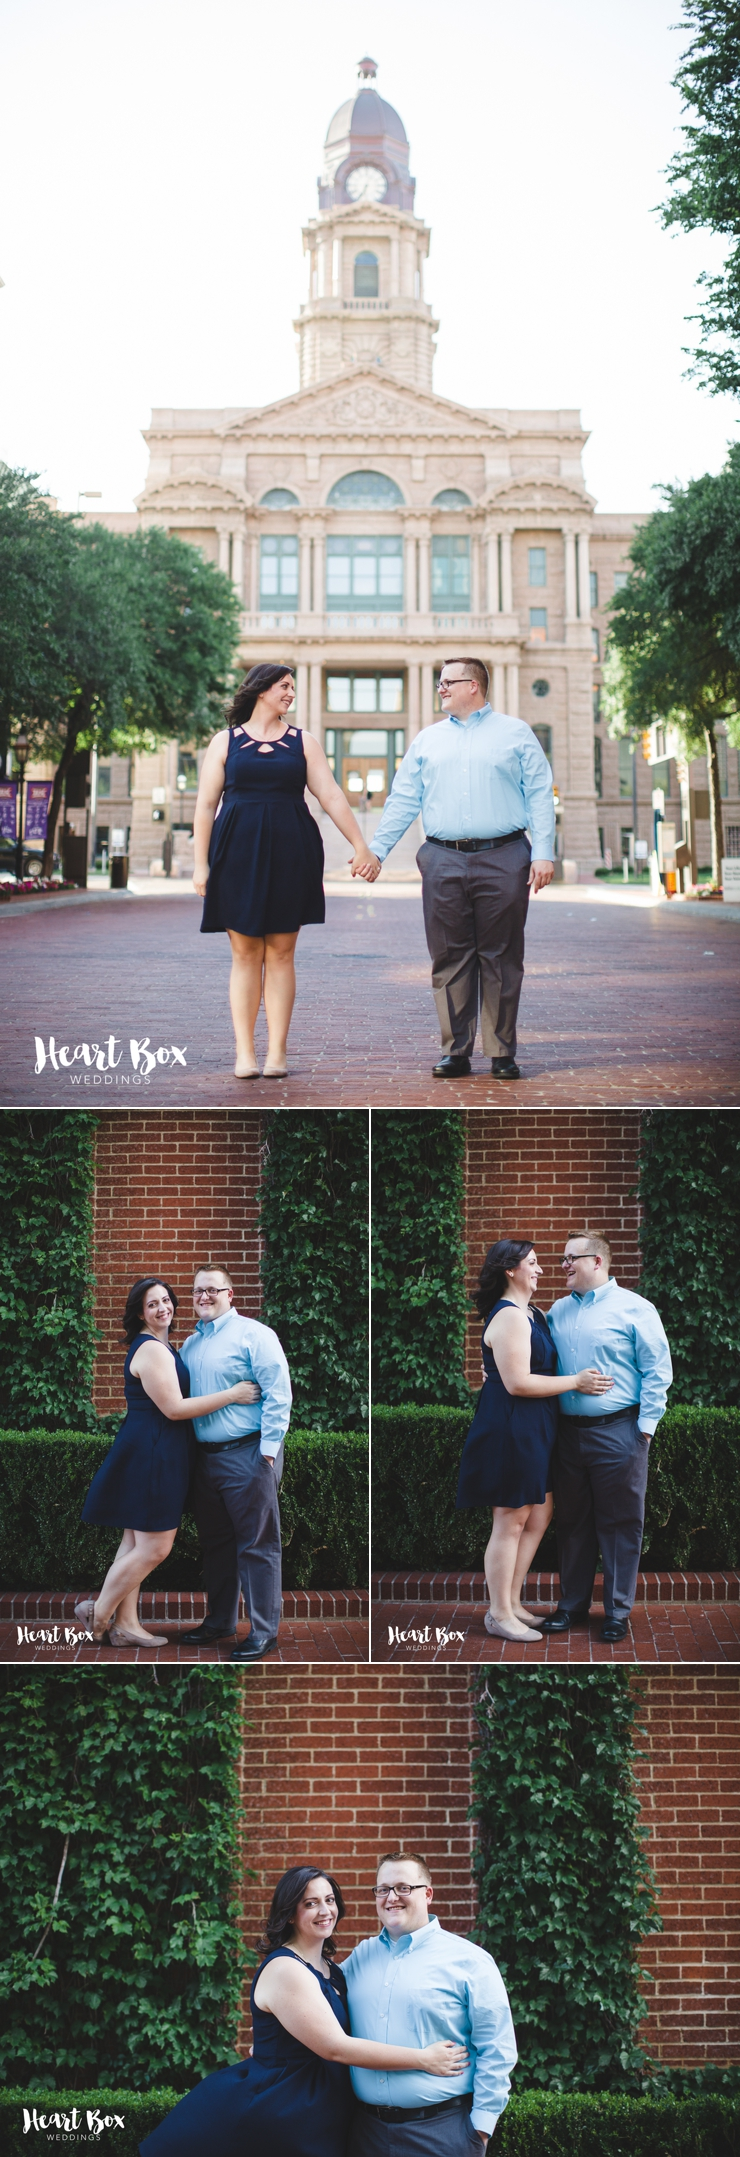 Danielle + Aaron Engagement Blog Collages 2.jpg